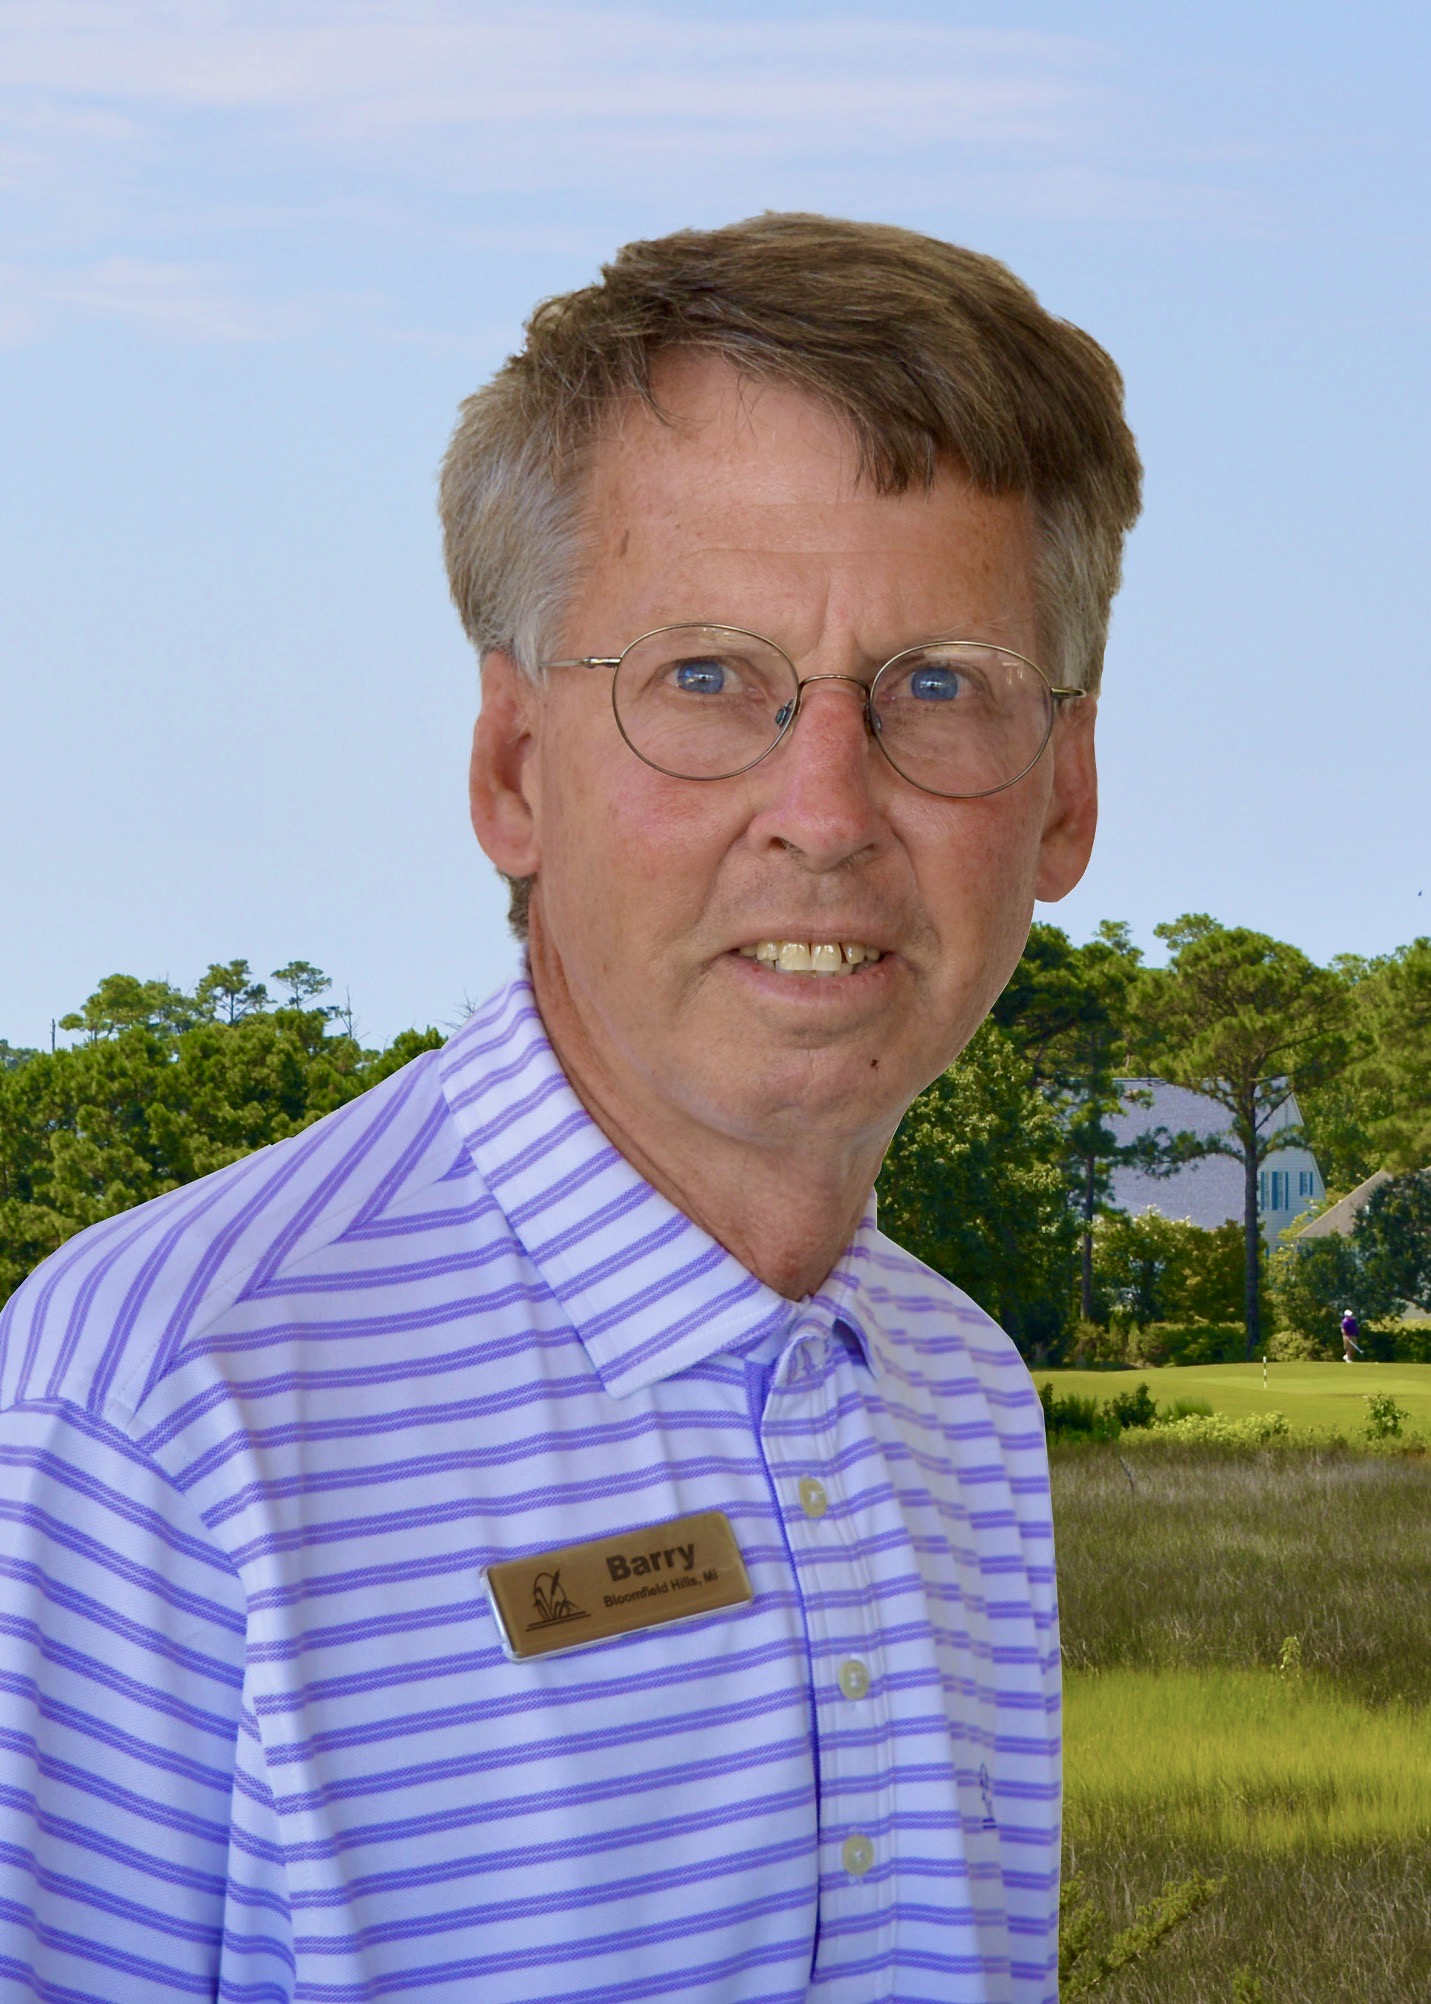 photo of Barry Walters, PGA